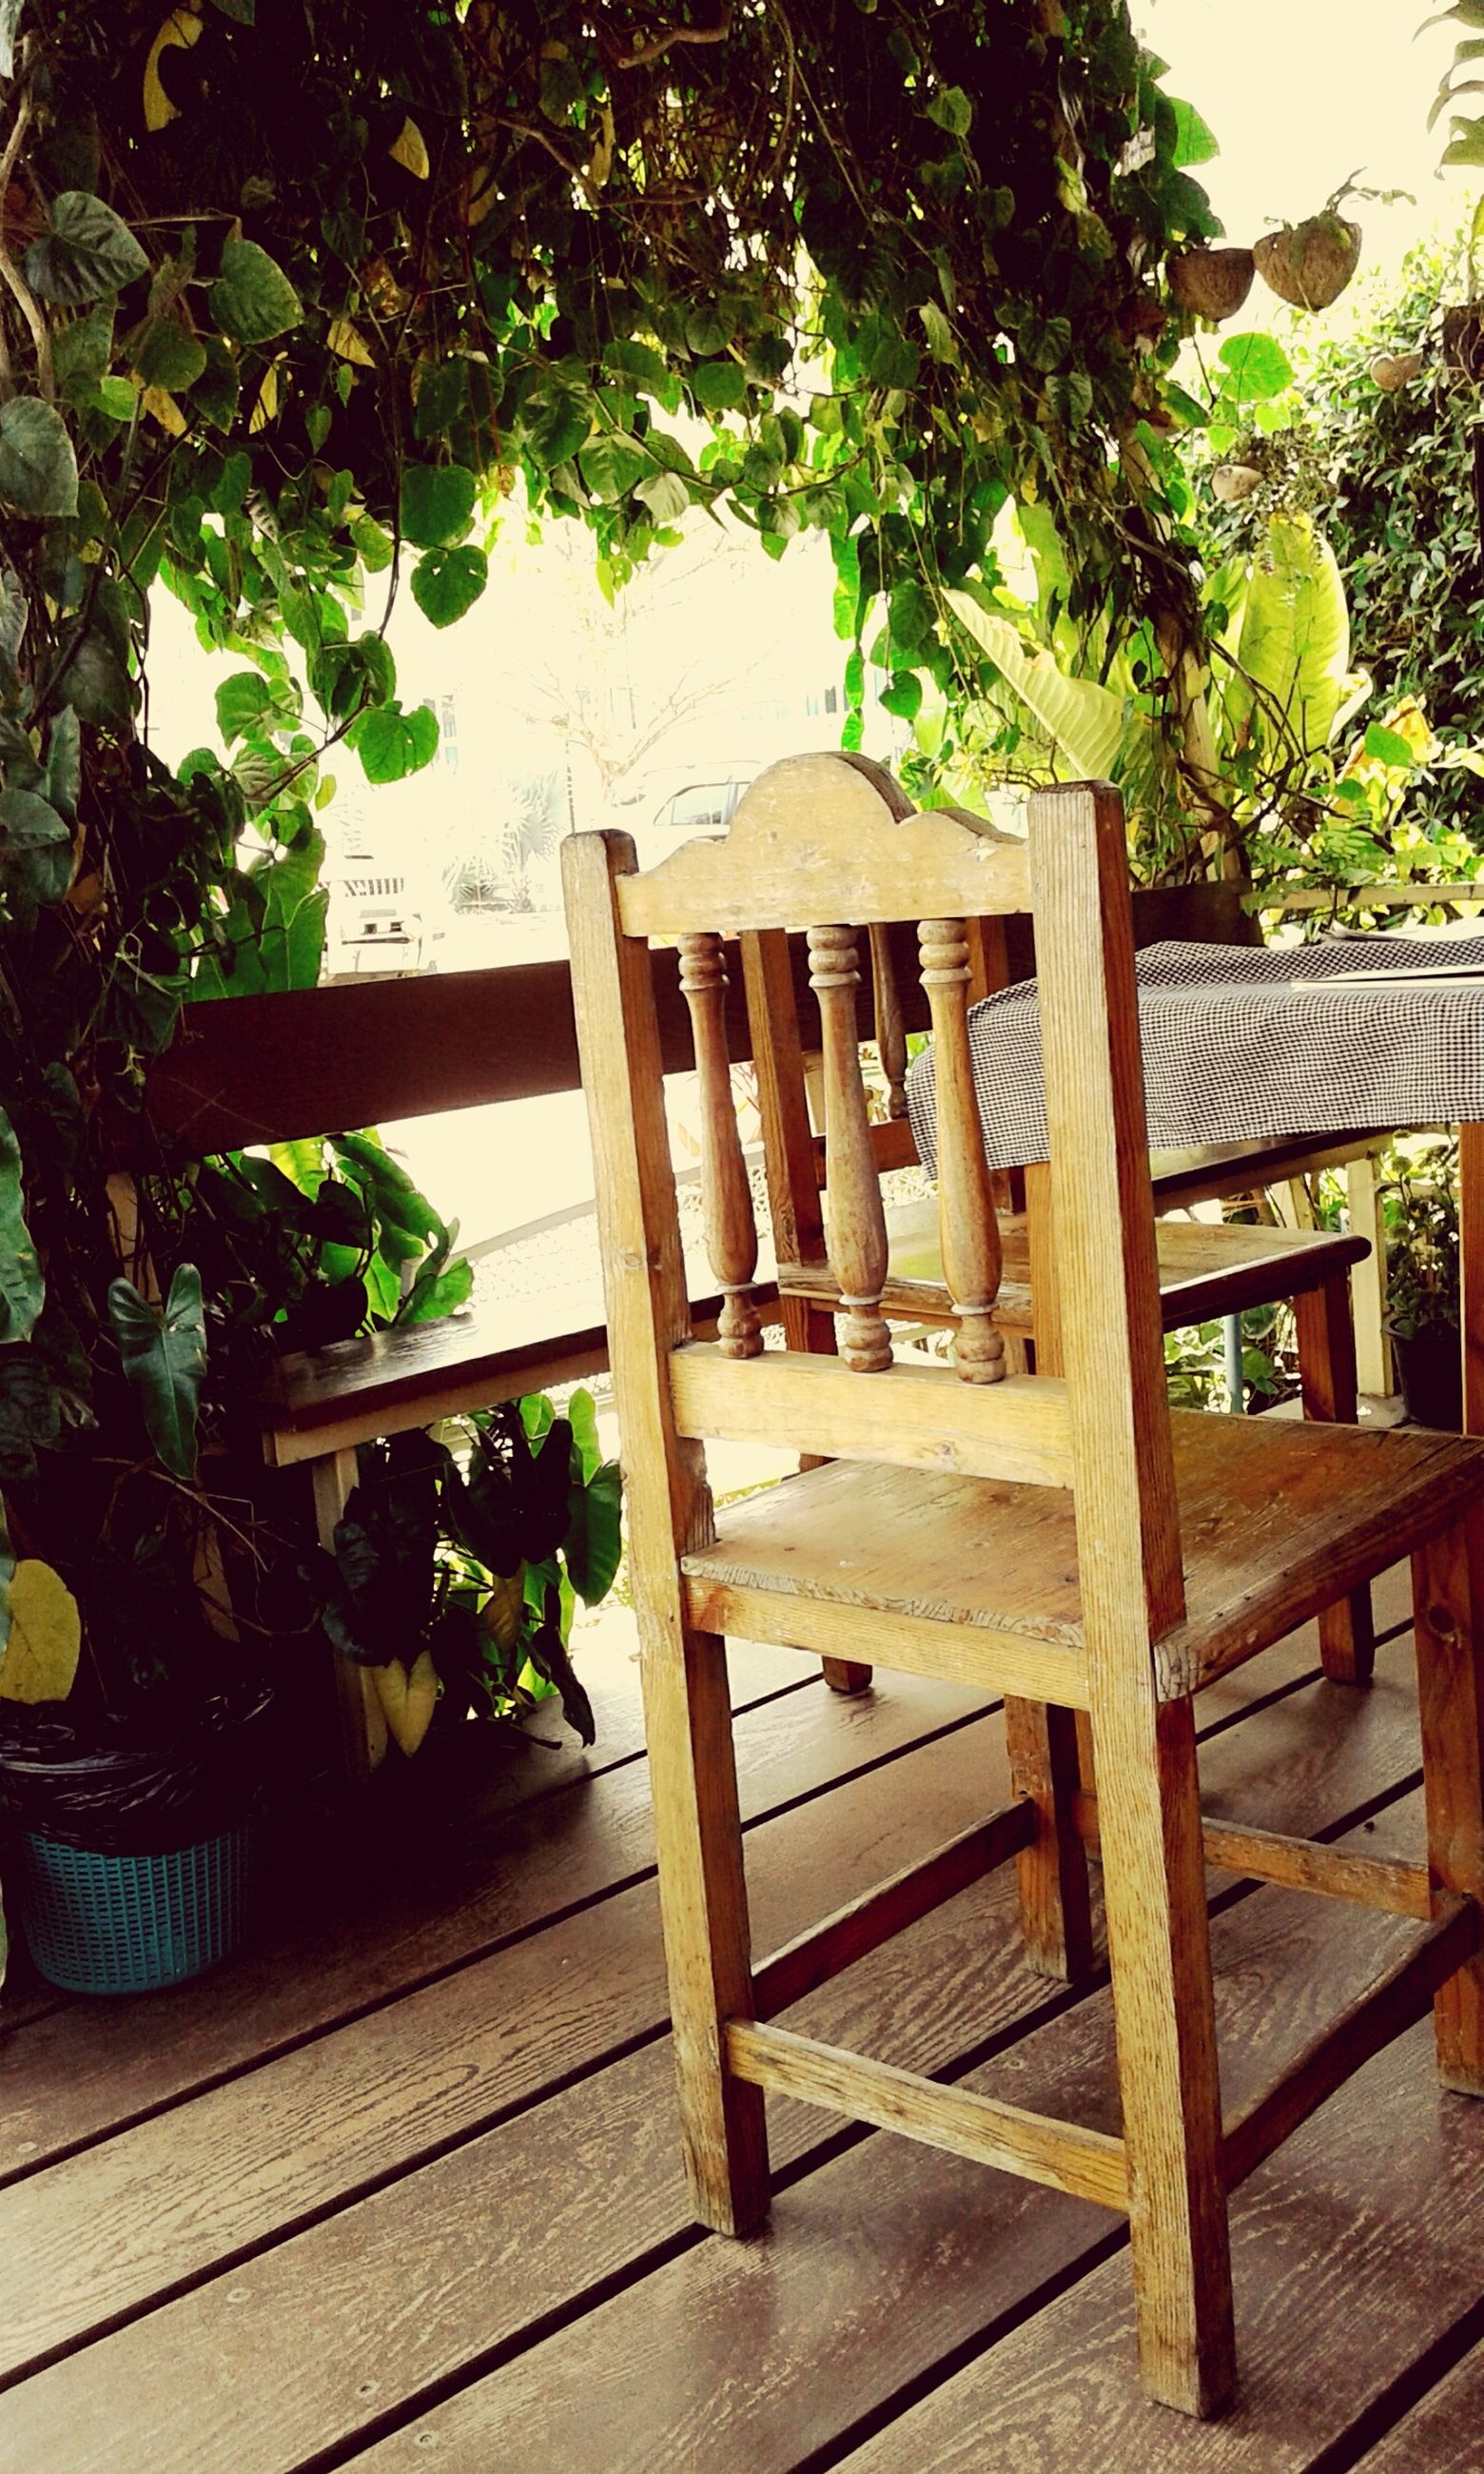 wood - material, wooden, green color, wood, plant, table, tree, growth, railing, potted plant, sunlight, day, high angle view, no people, indoors, nature, leaf, steps, plank